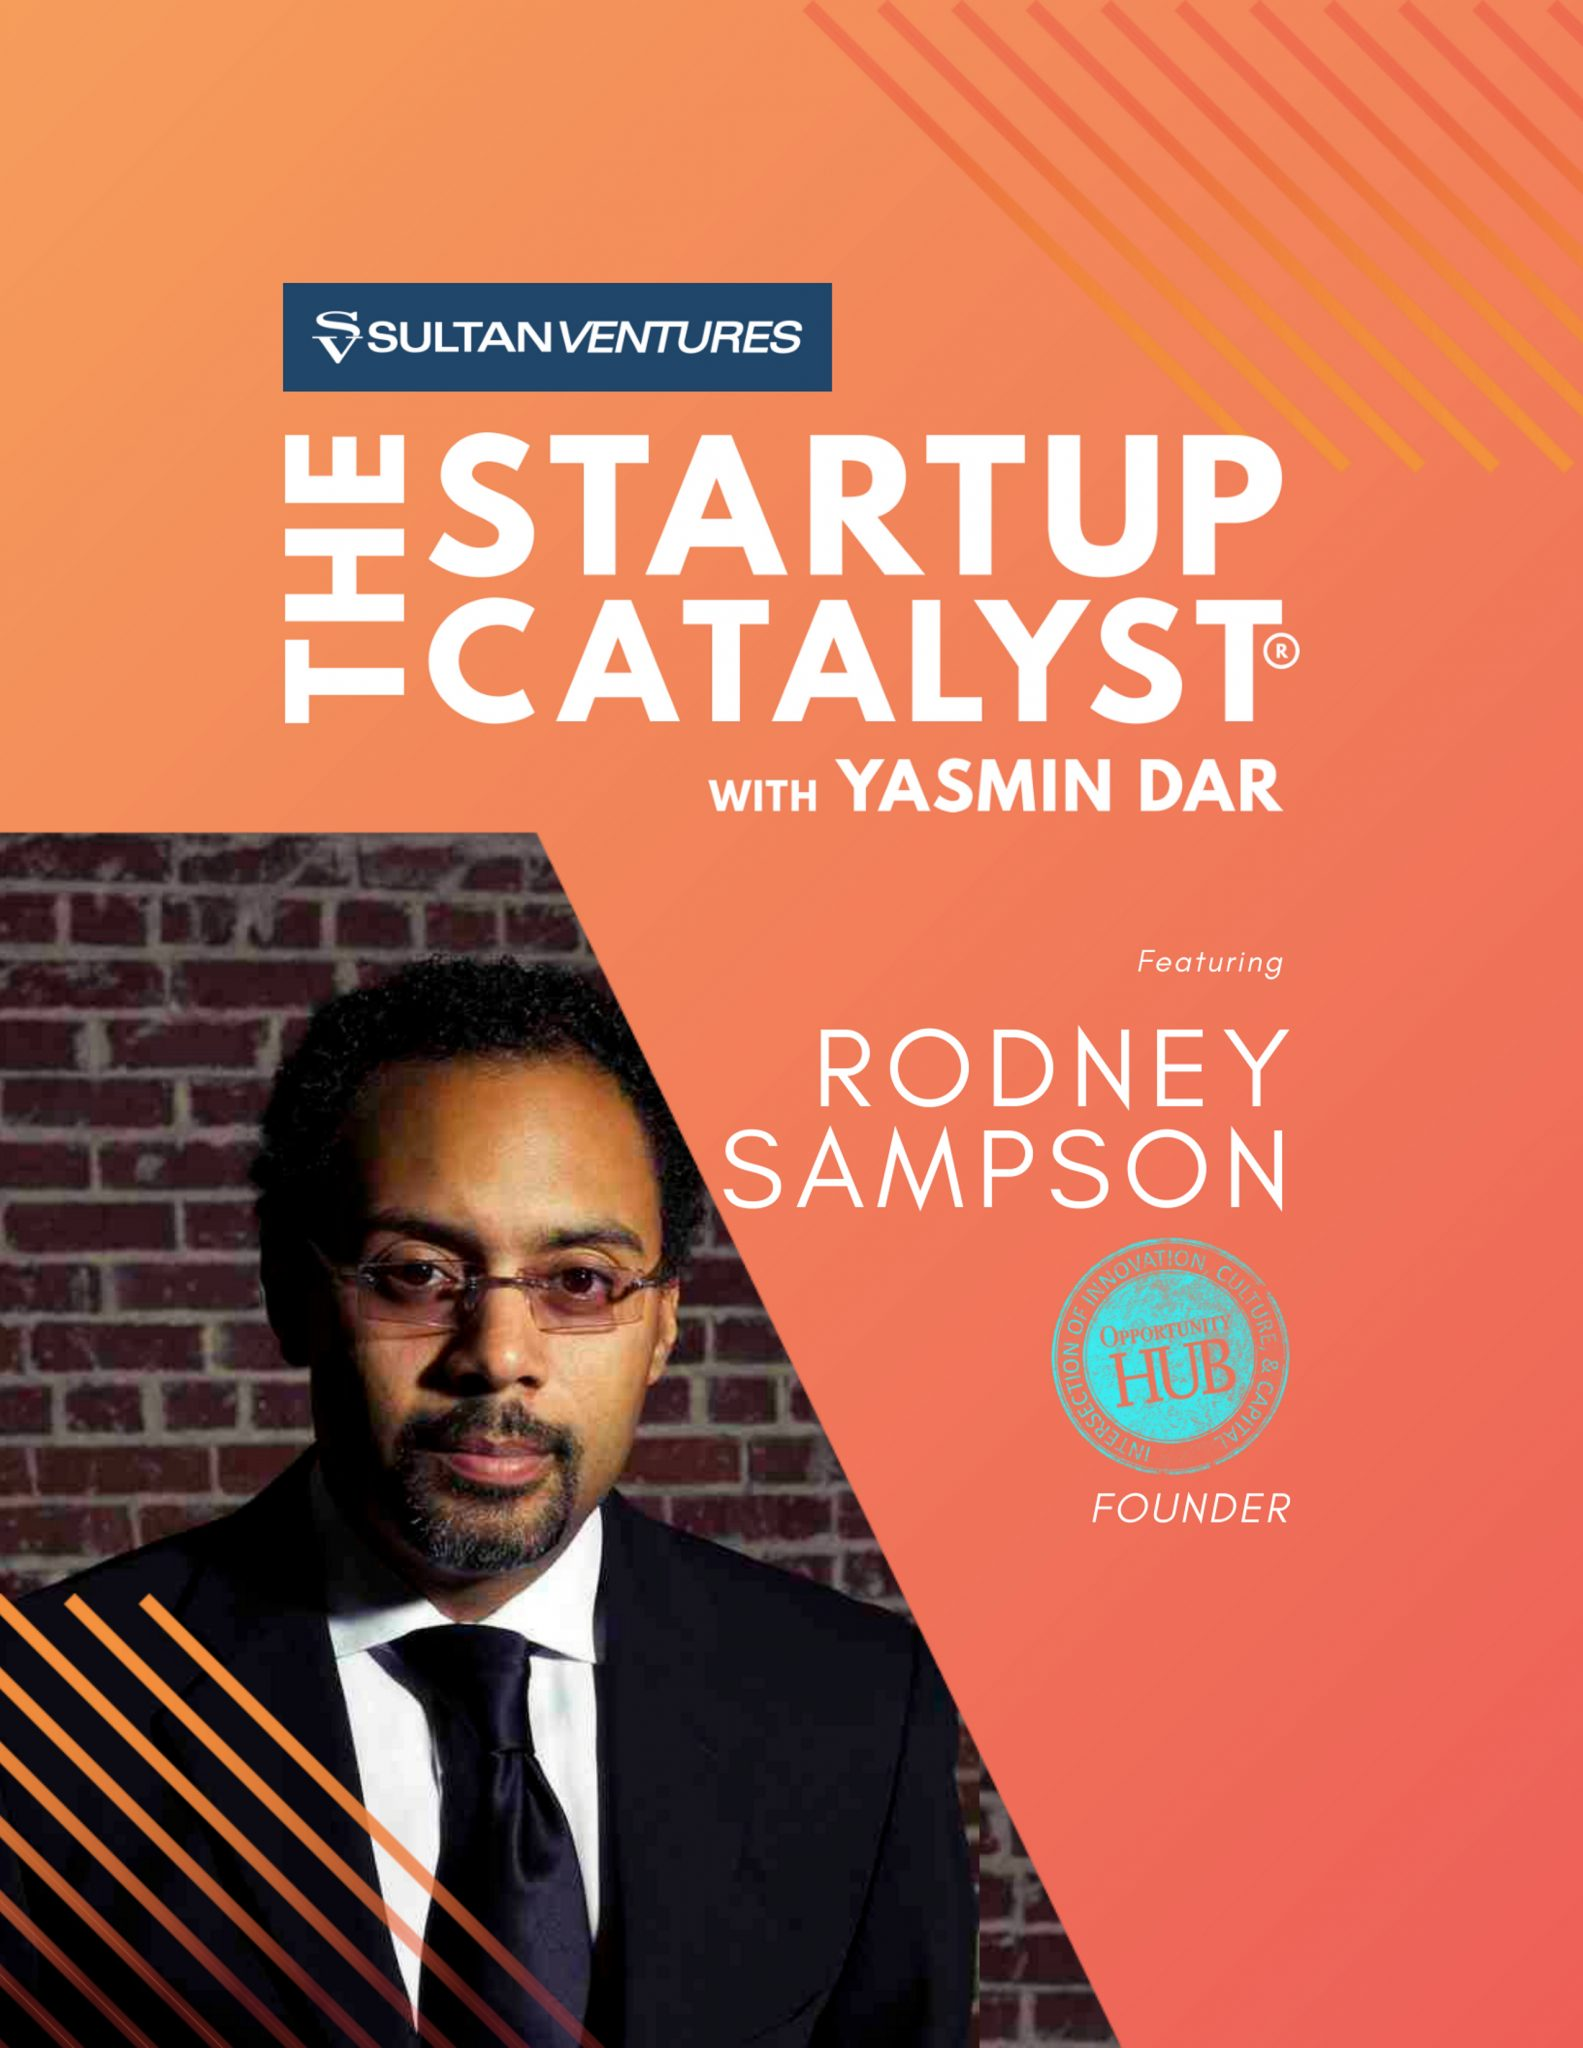 Photo of Rodney Sampson: Inclusivity Advocate, Investor, and Founder of Opportunity Hub.